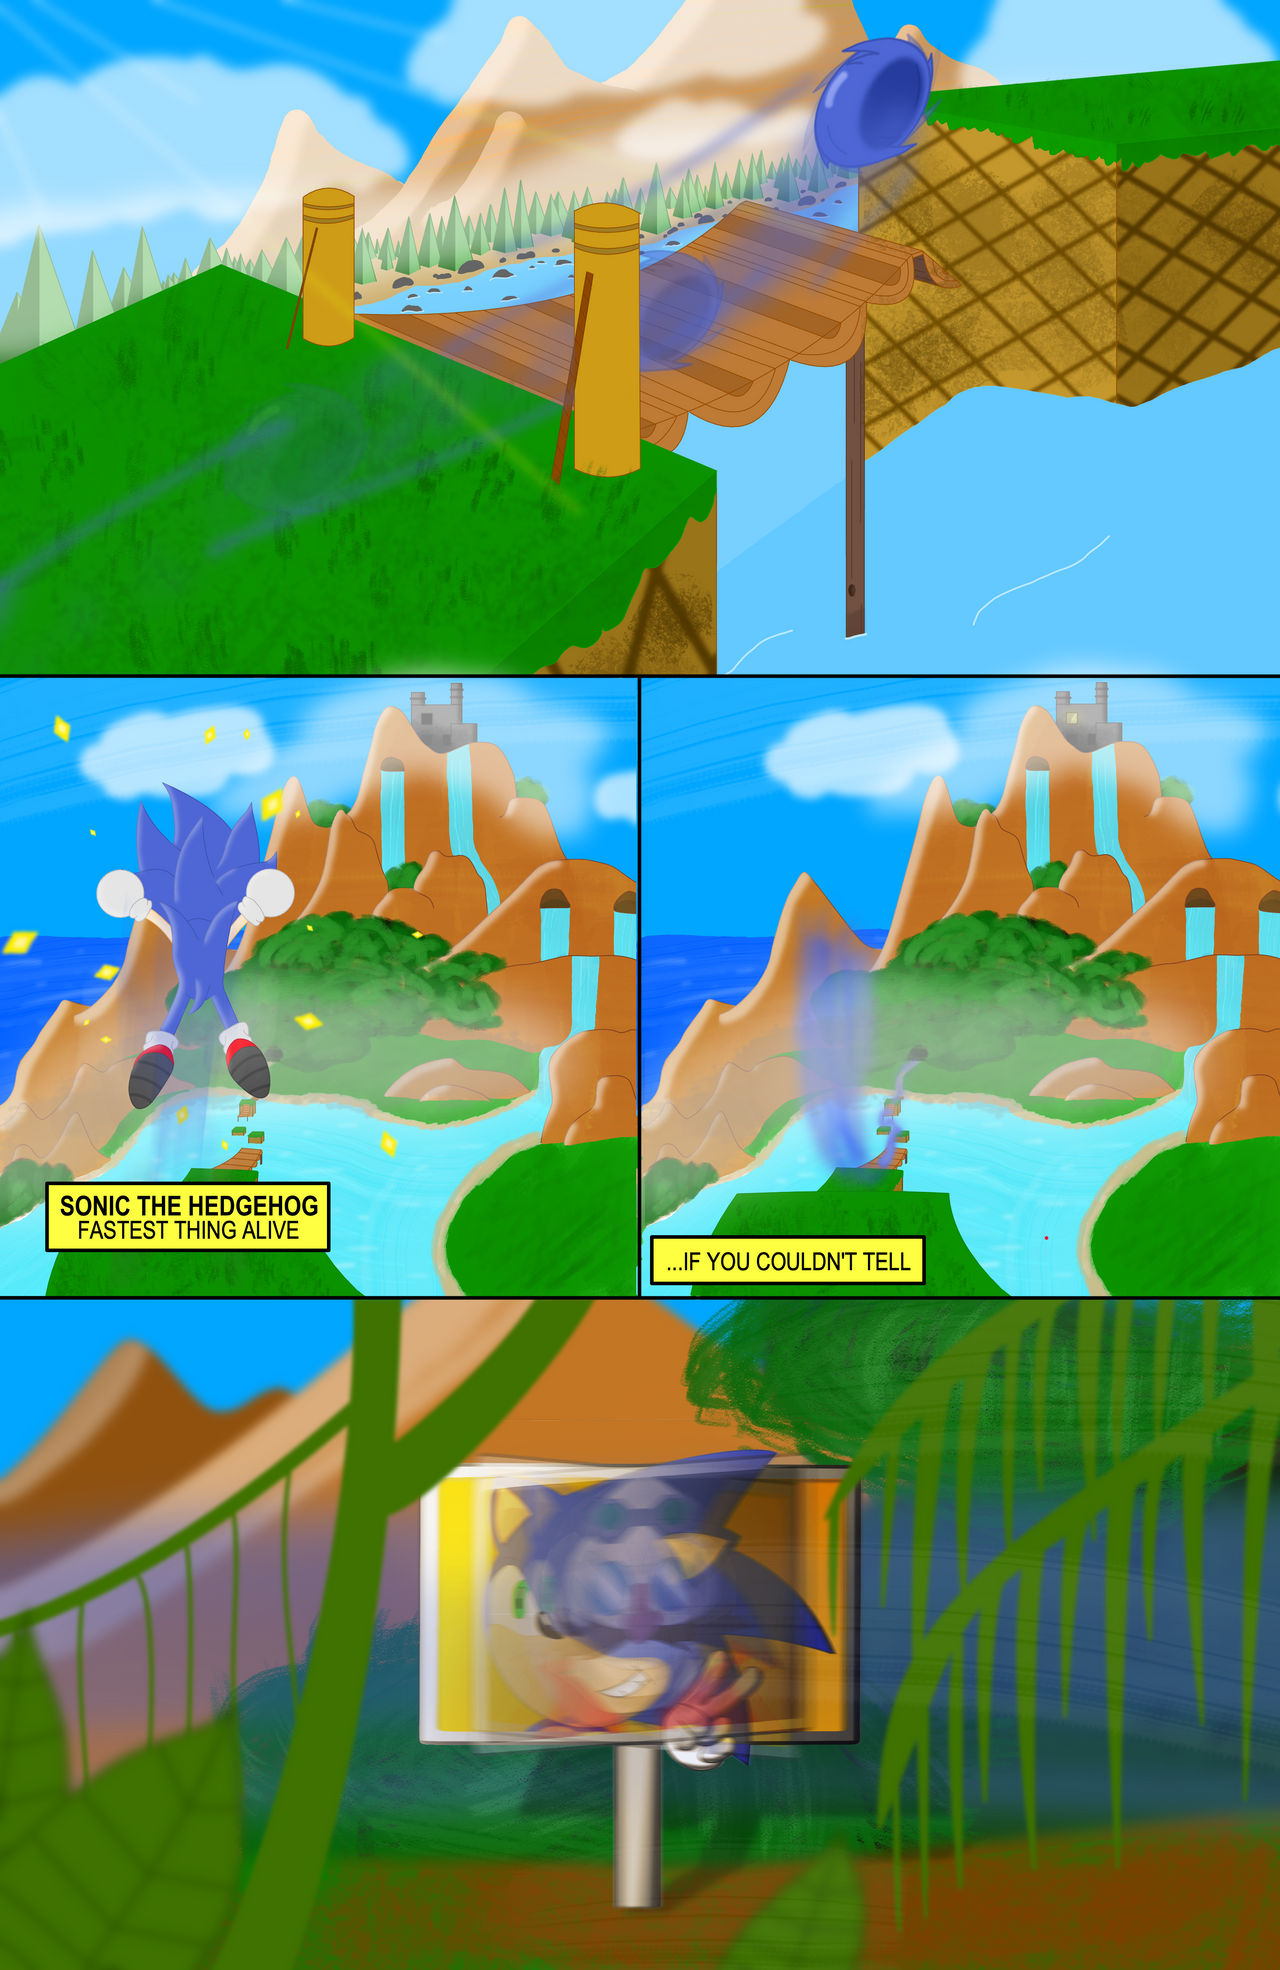 Sonic The Hedgehog Infinite Fun 1 Bridge Zone By Mrapplesalad On Deviantart